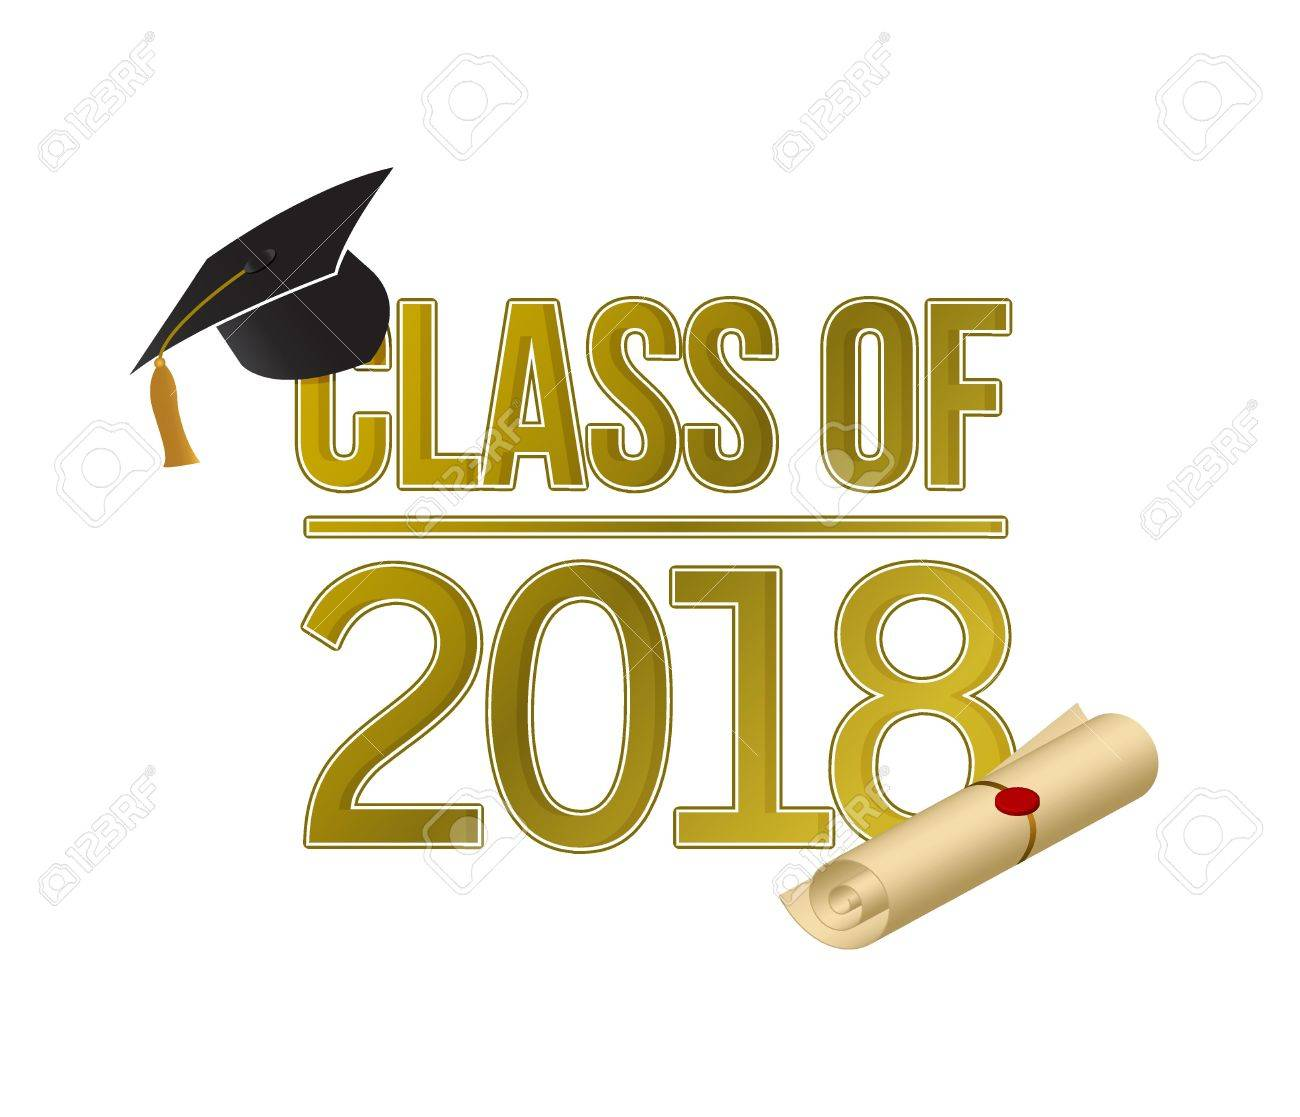 Graduation Clipart 2018 (103+ images in Collection) Page 1.